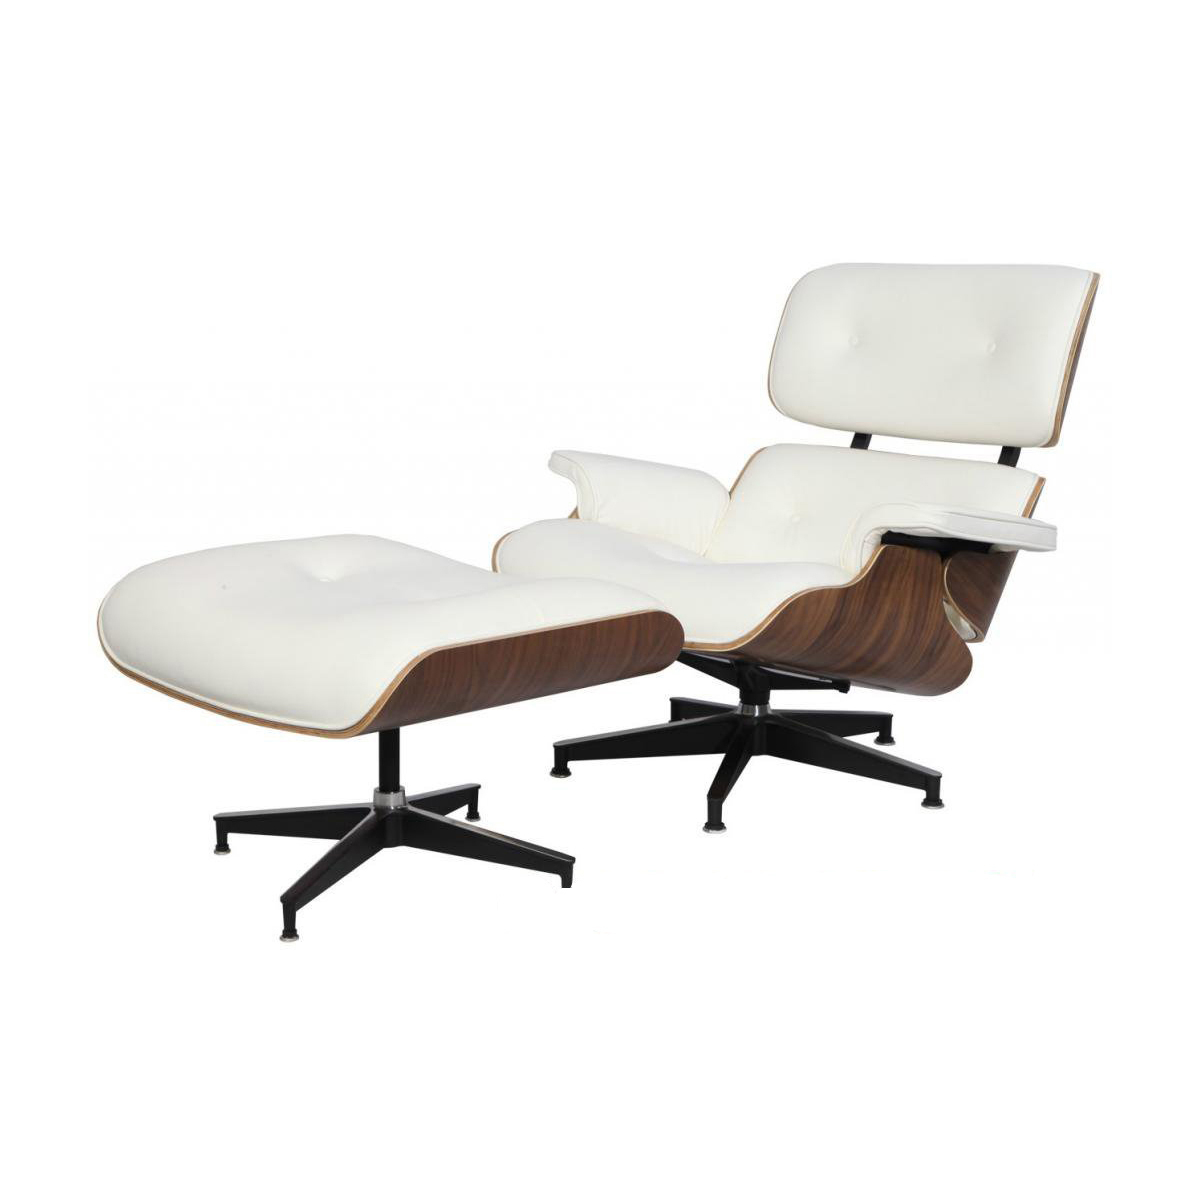 eMod - Mid Century Eames Style Lounge Chair & Ottoman Replica Italian Leather White Walnut